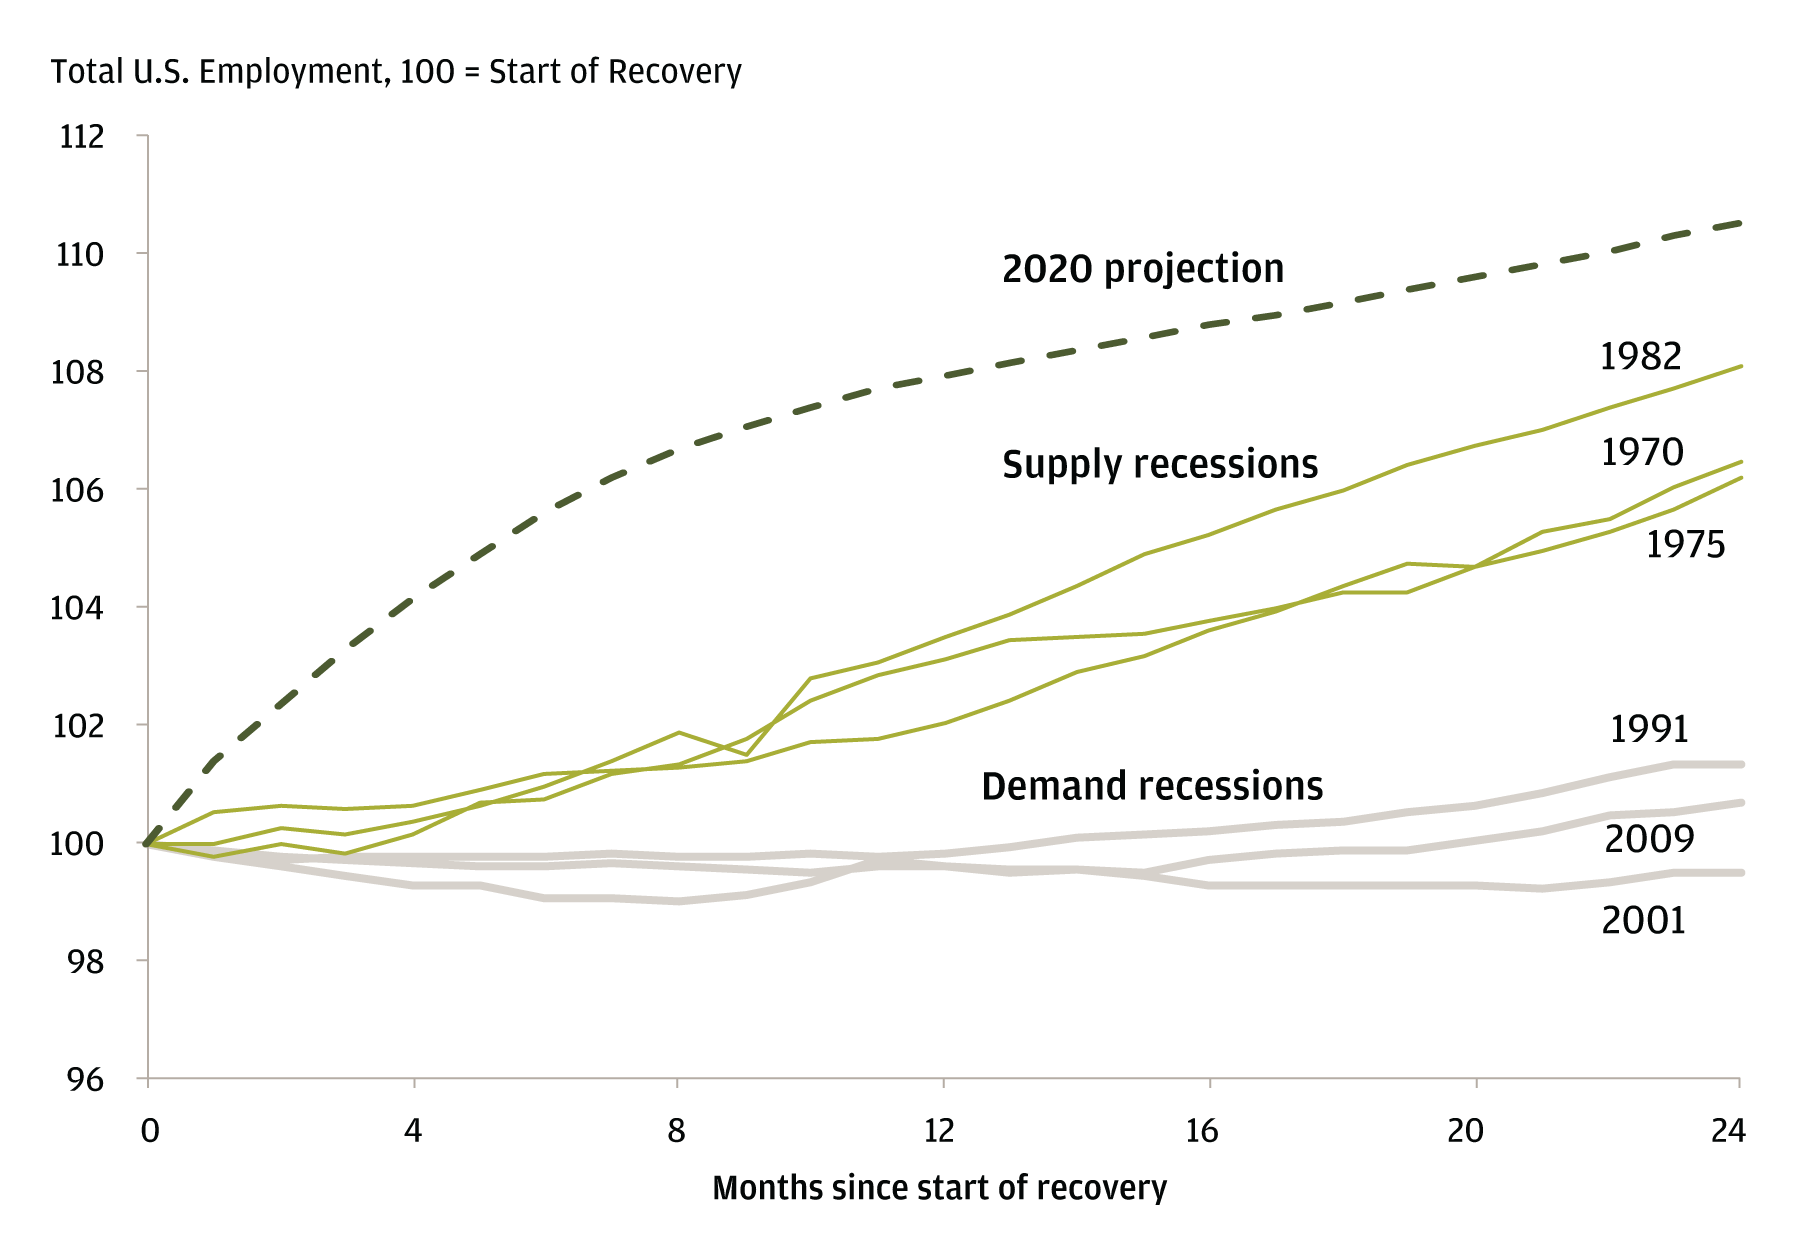 "The current economic recession is caused by a ""social distancing bottleneck"" rather than imbalances in the economy. The line chart shows how recoveries from supply recessions caused by bottlenecks are typically faster in bouncing back than demand recessions."